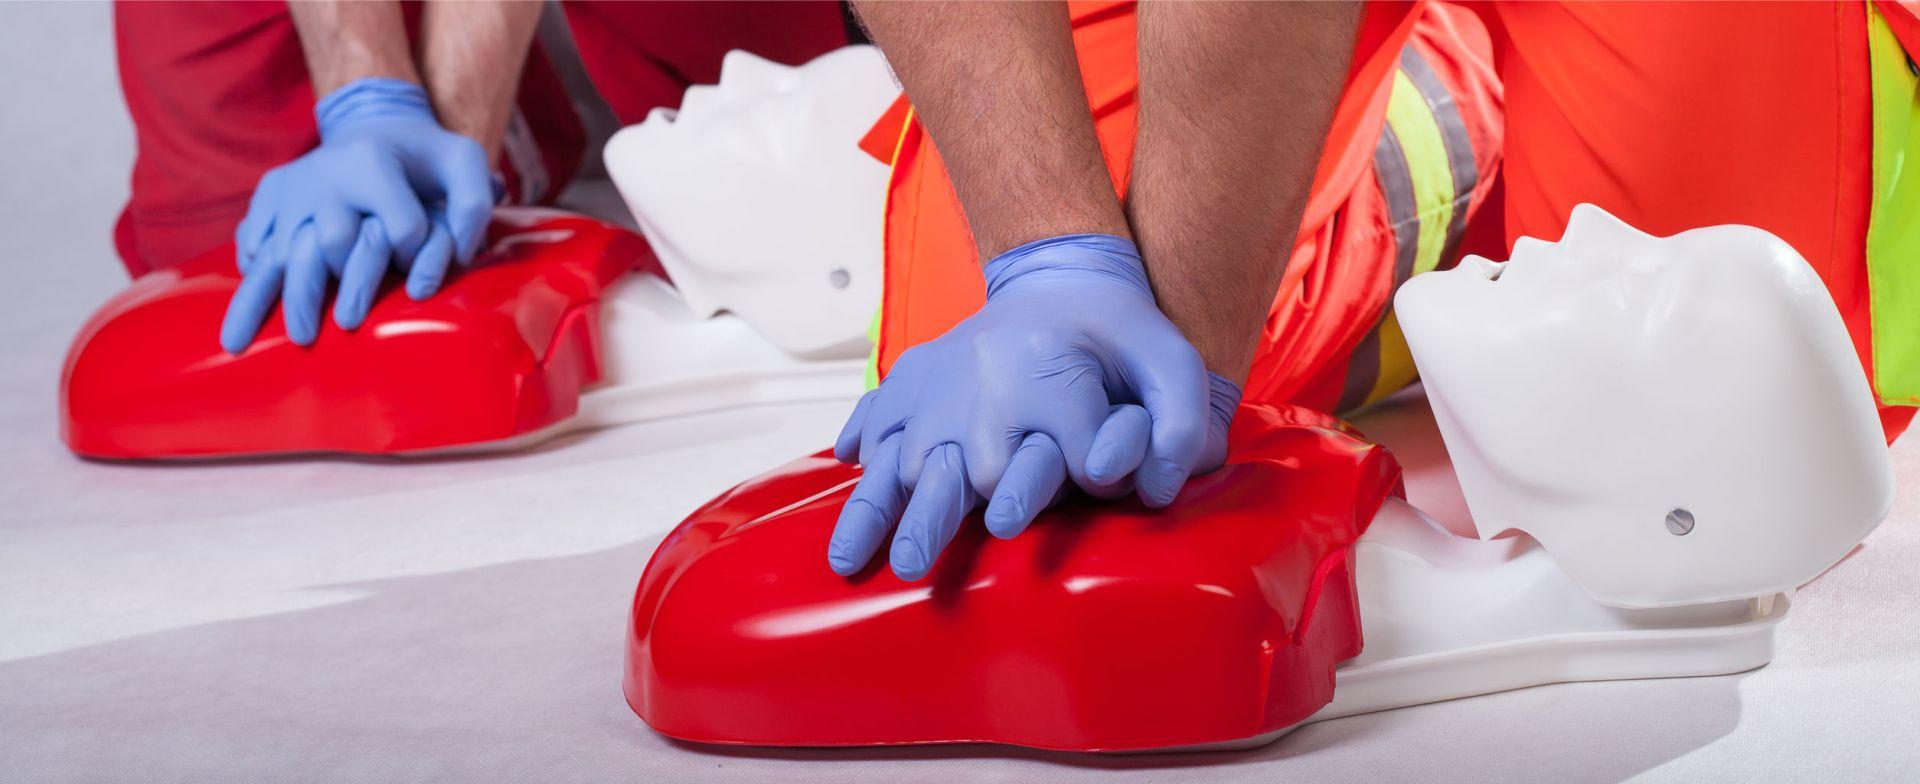 cpr / first aid course for lifeguards